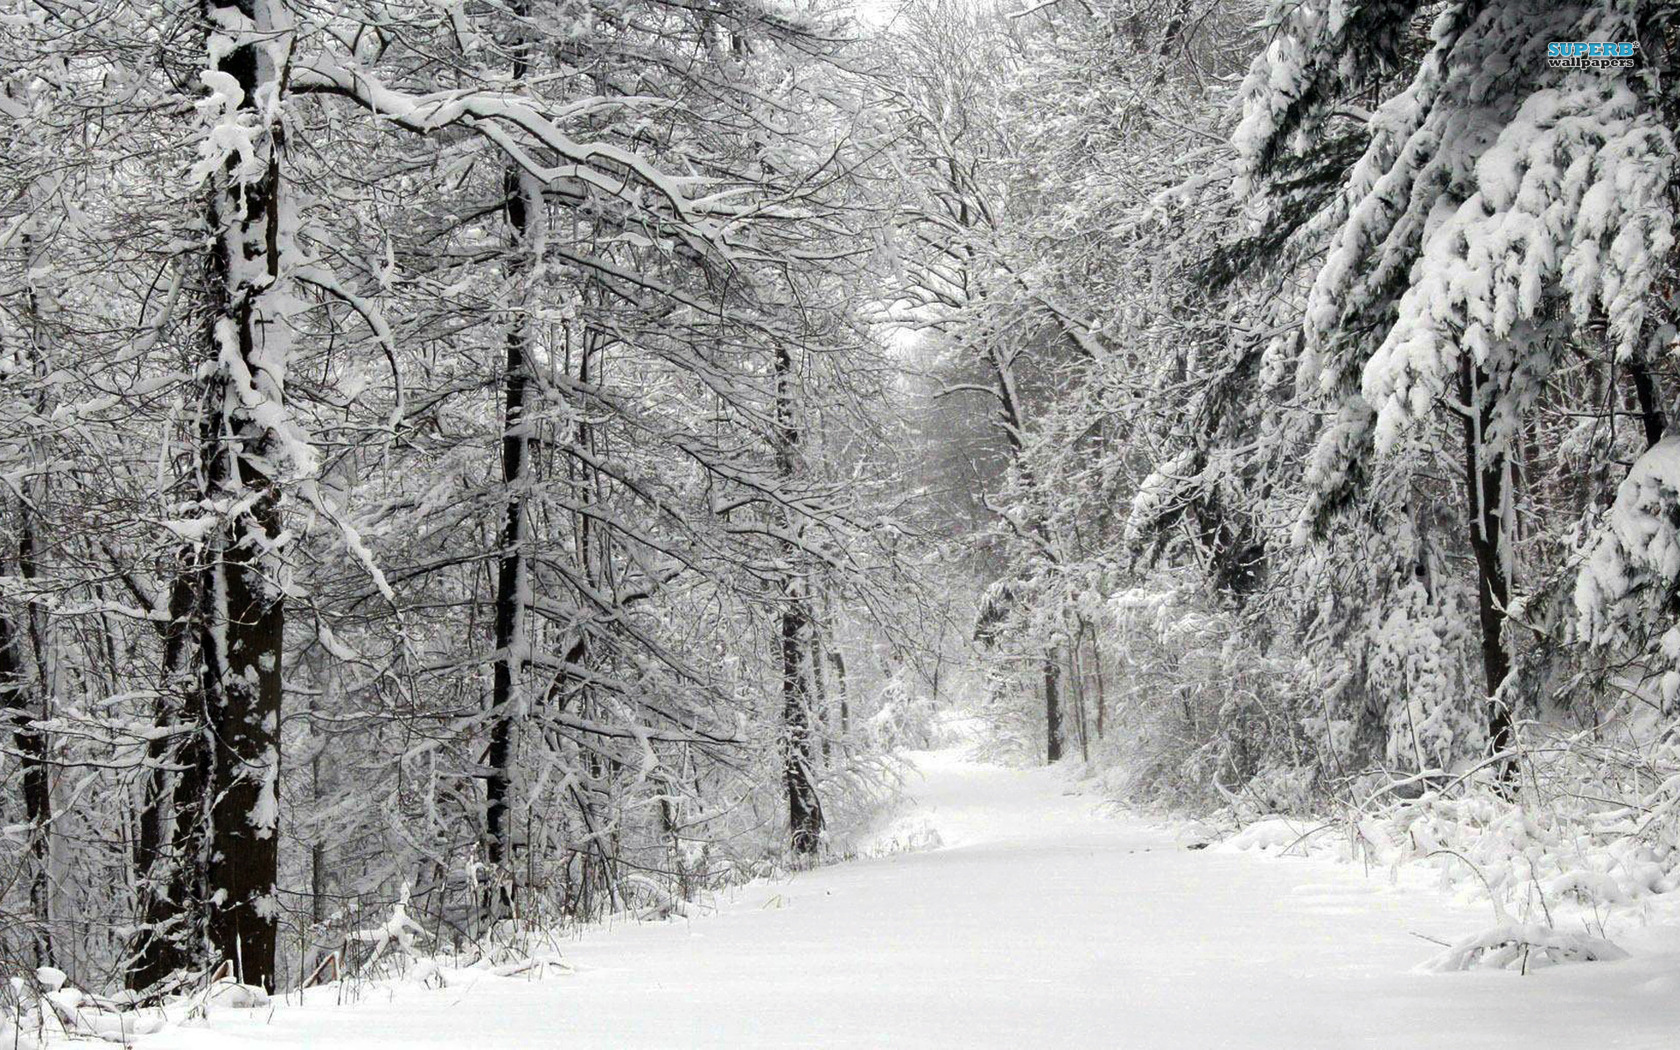 Snowy Road in the Forest wallpaper 1680x1050